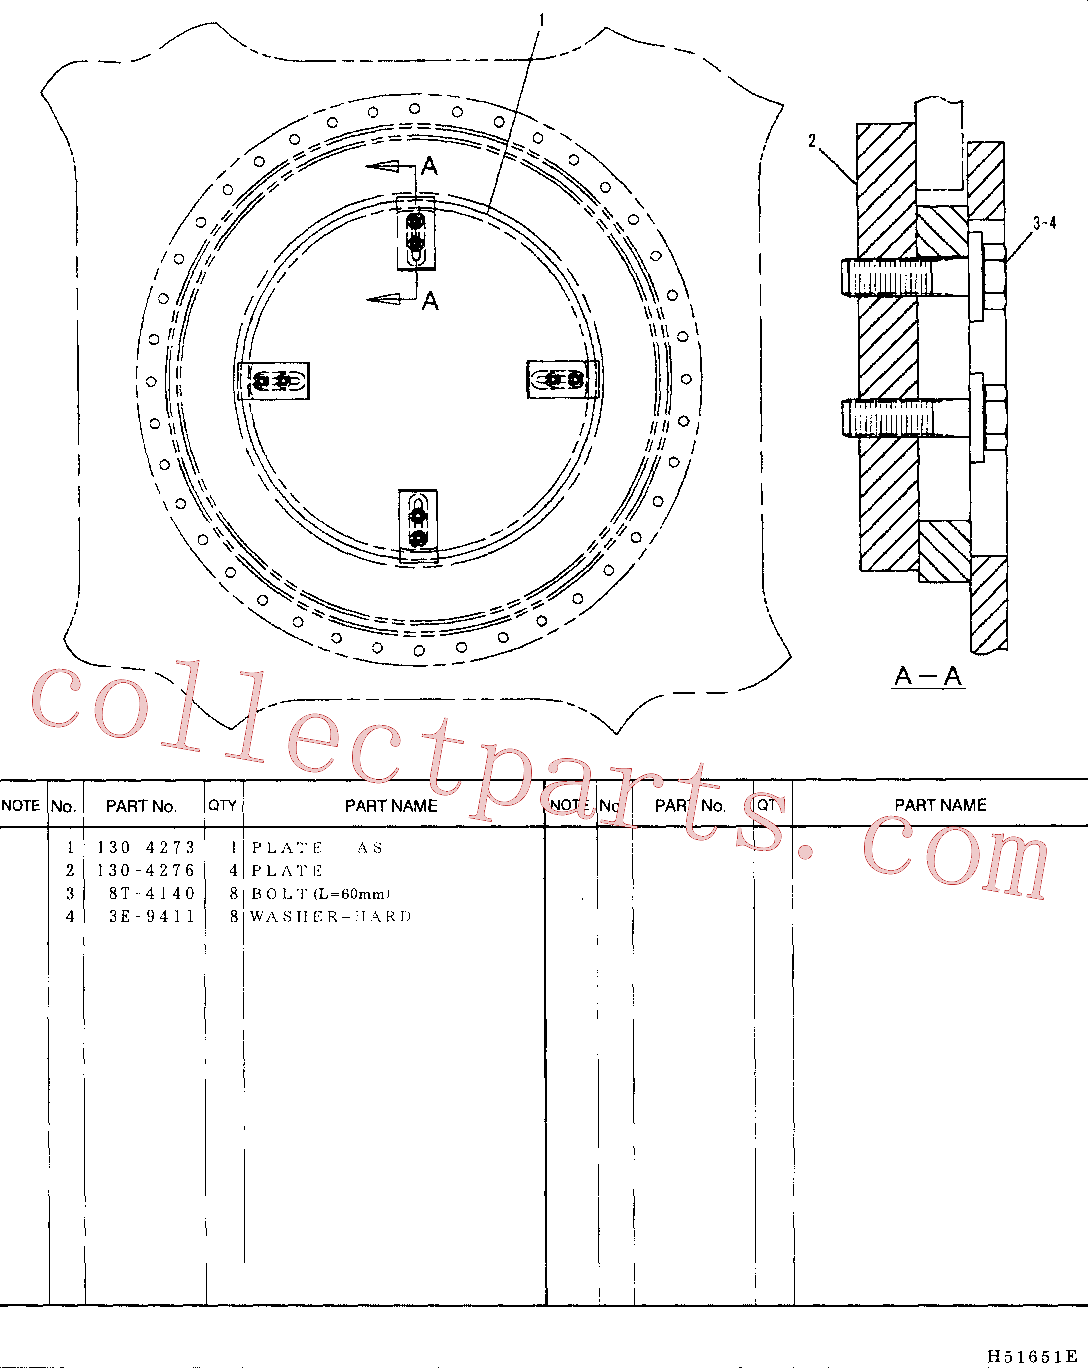 CAT 3E-9411 for 330C Excavator(EXC) frame and body 130-4272 Assembly